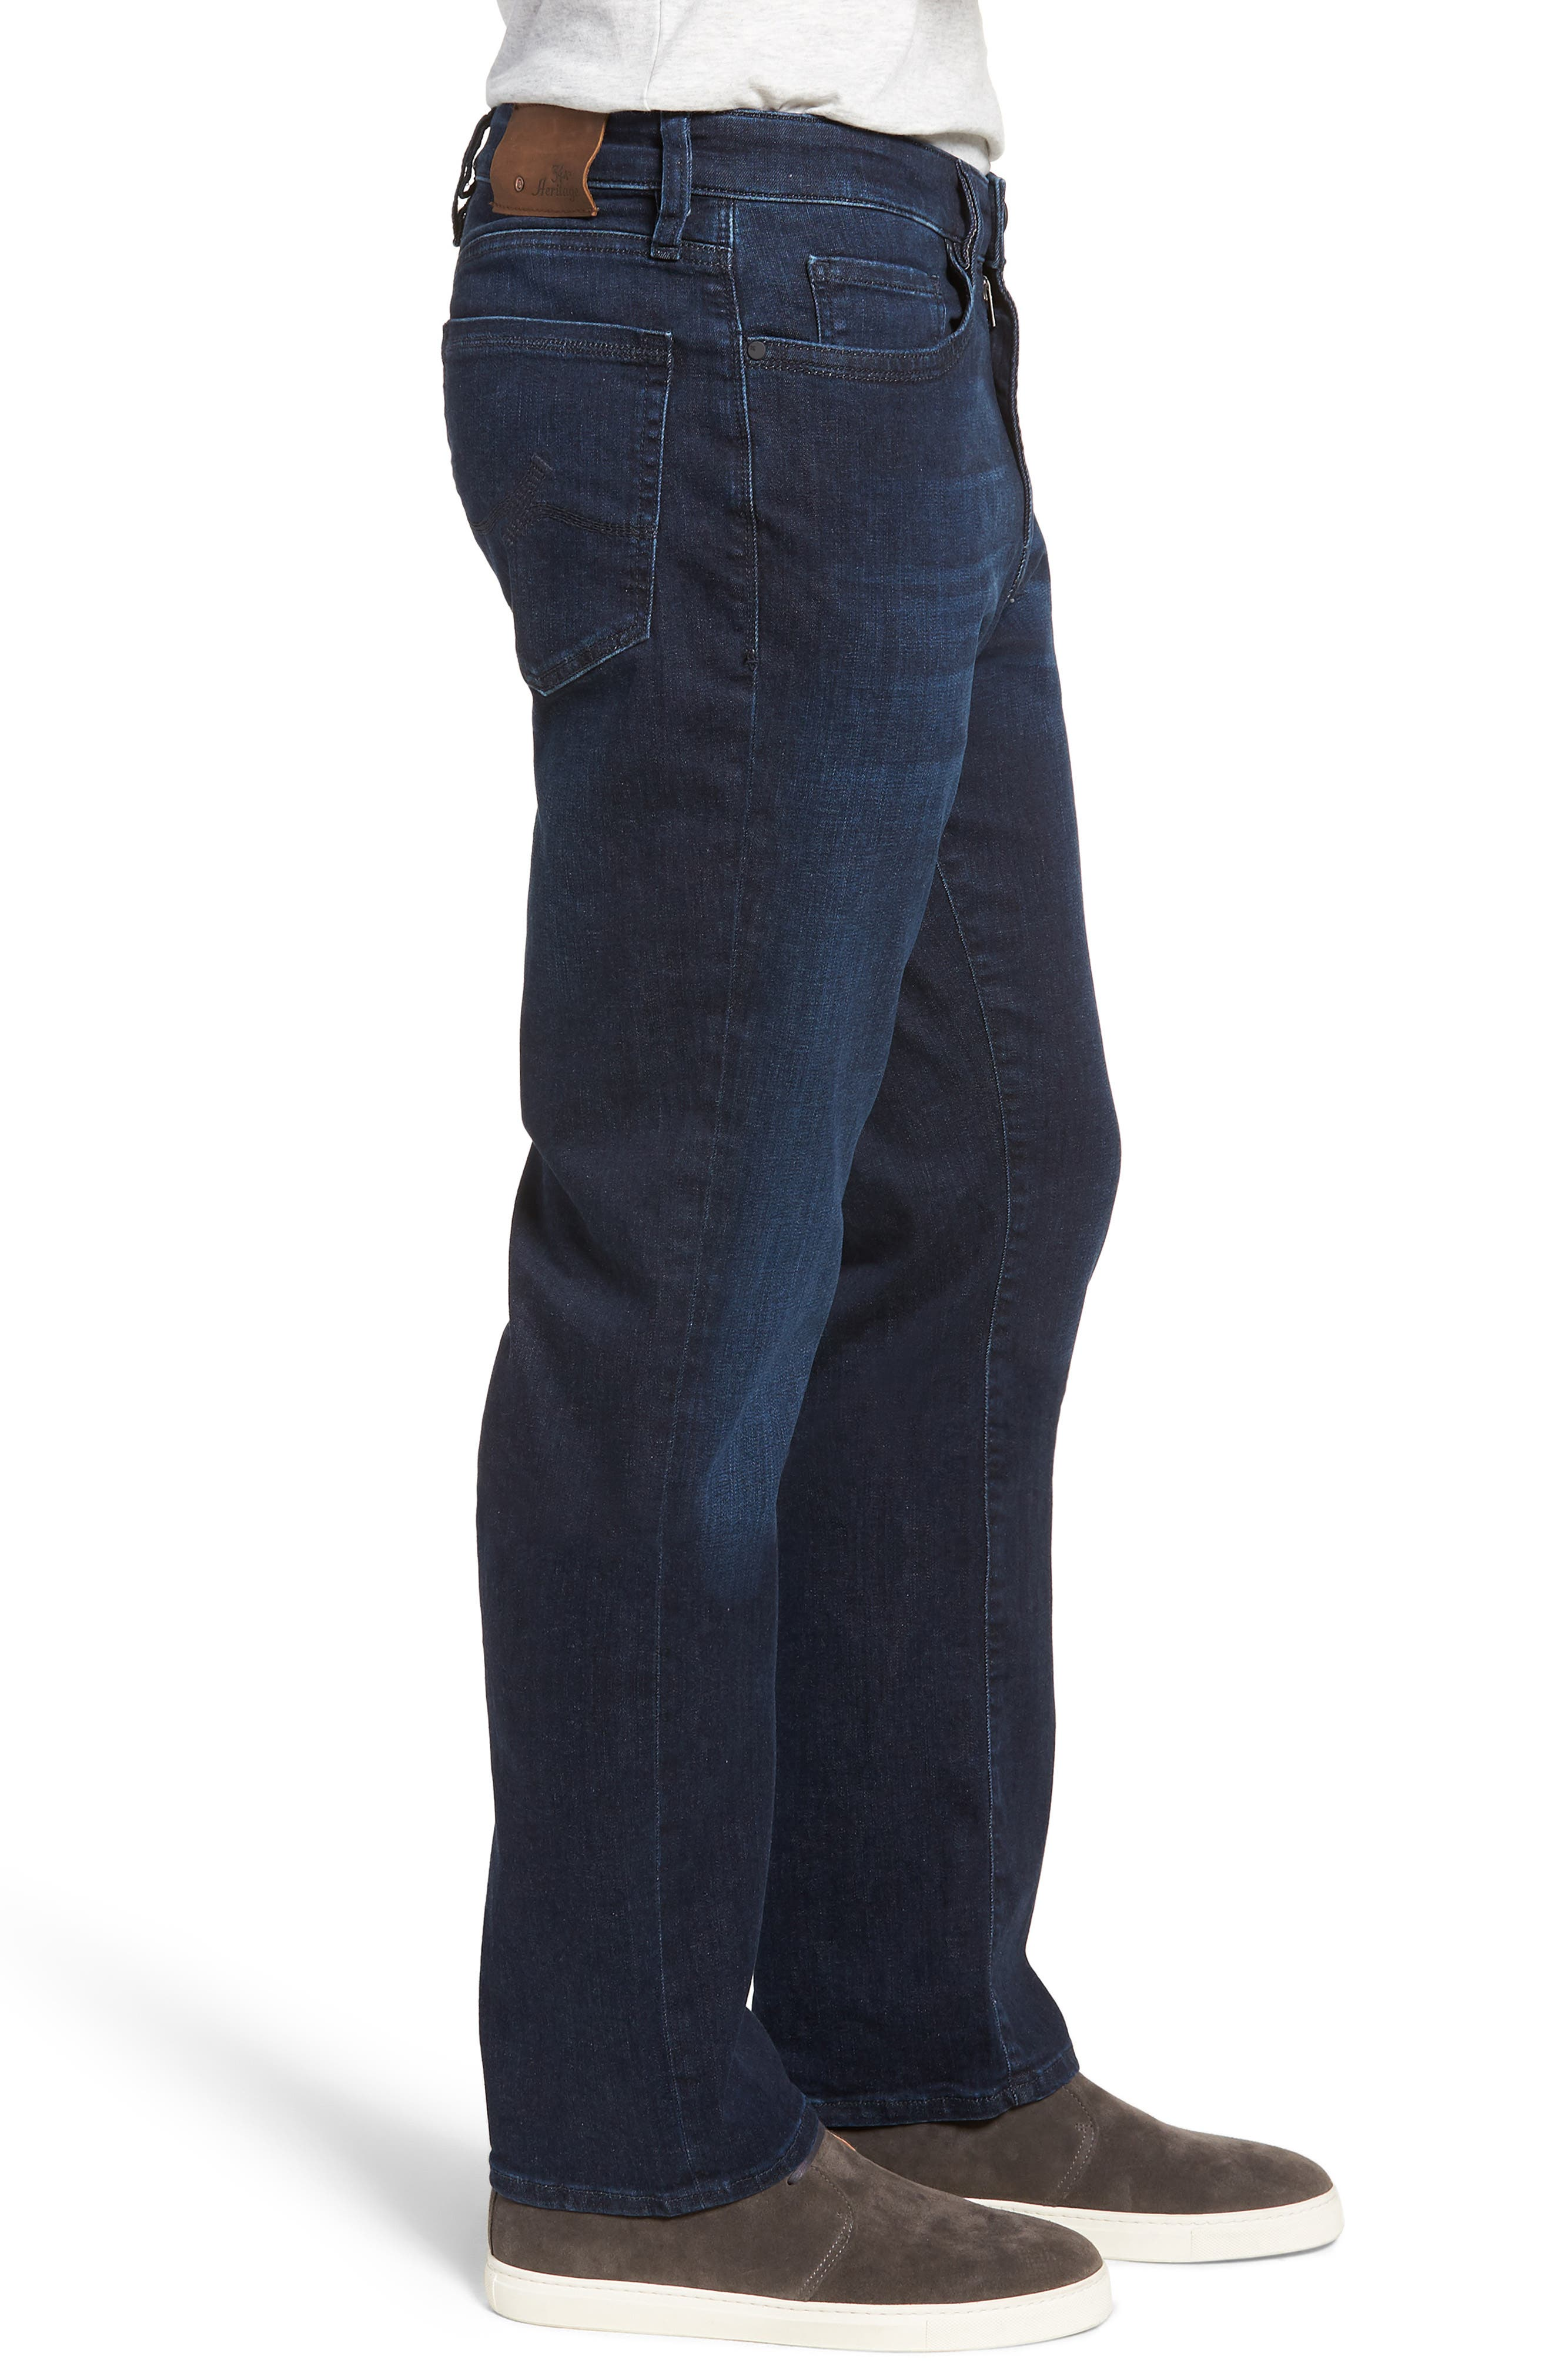 Charisma Relaxed Fit Jeans,                             Alternate thumbnail 3, color,                             Dark Milan